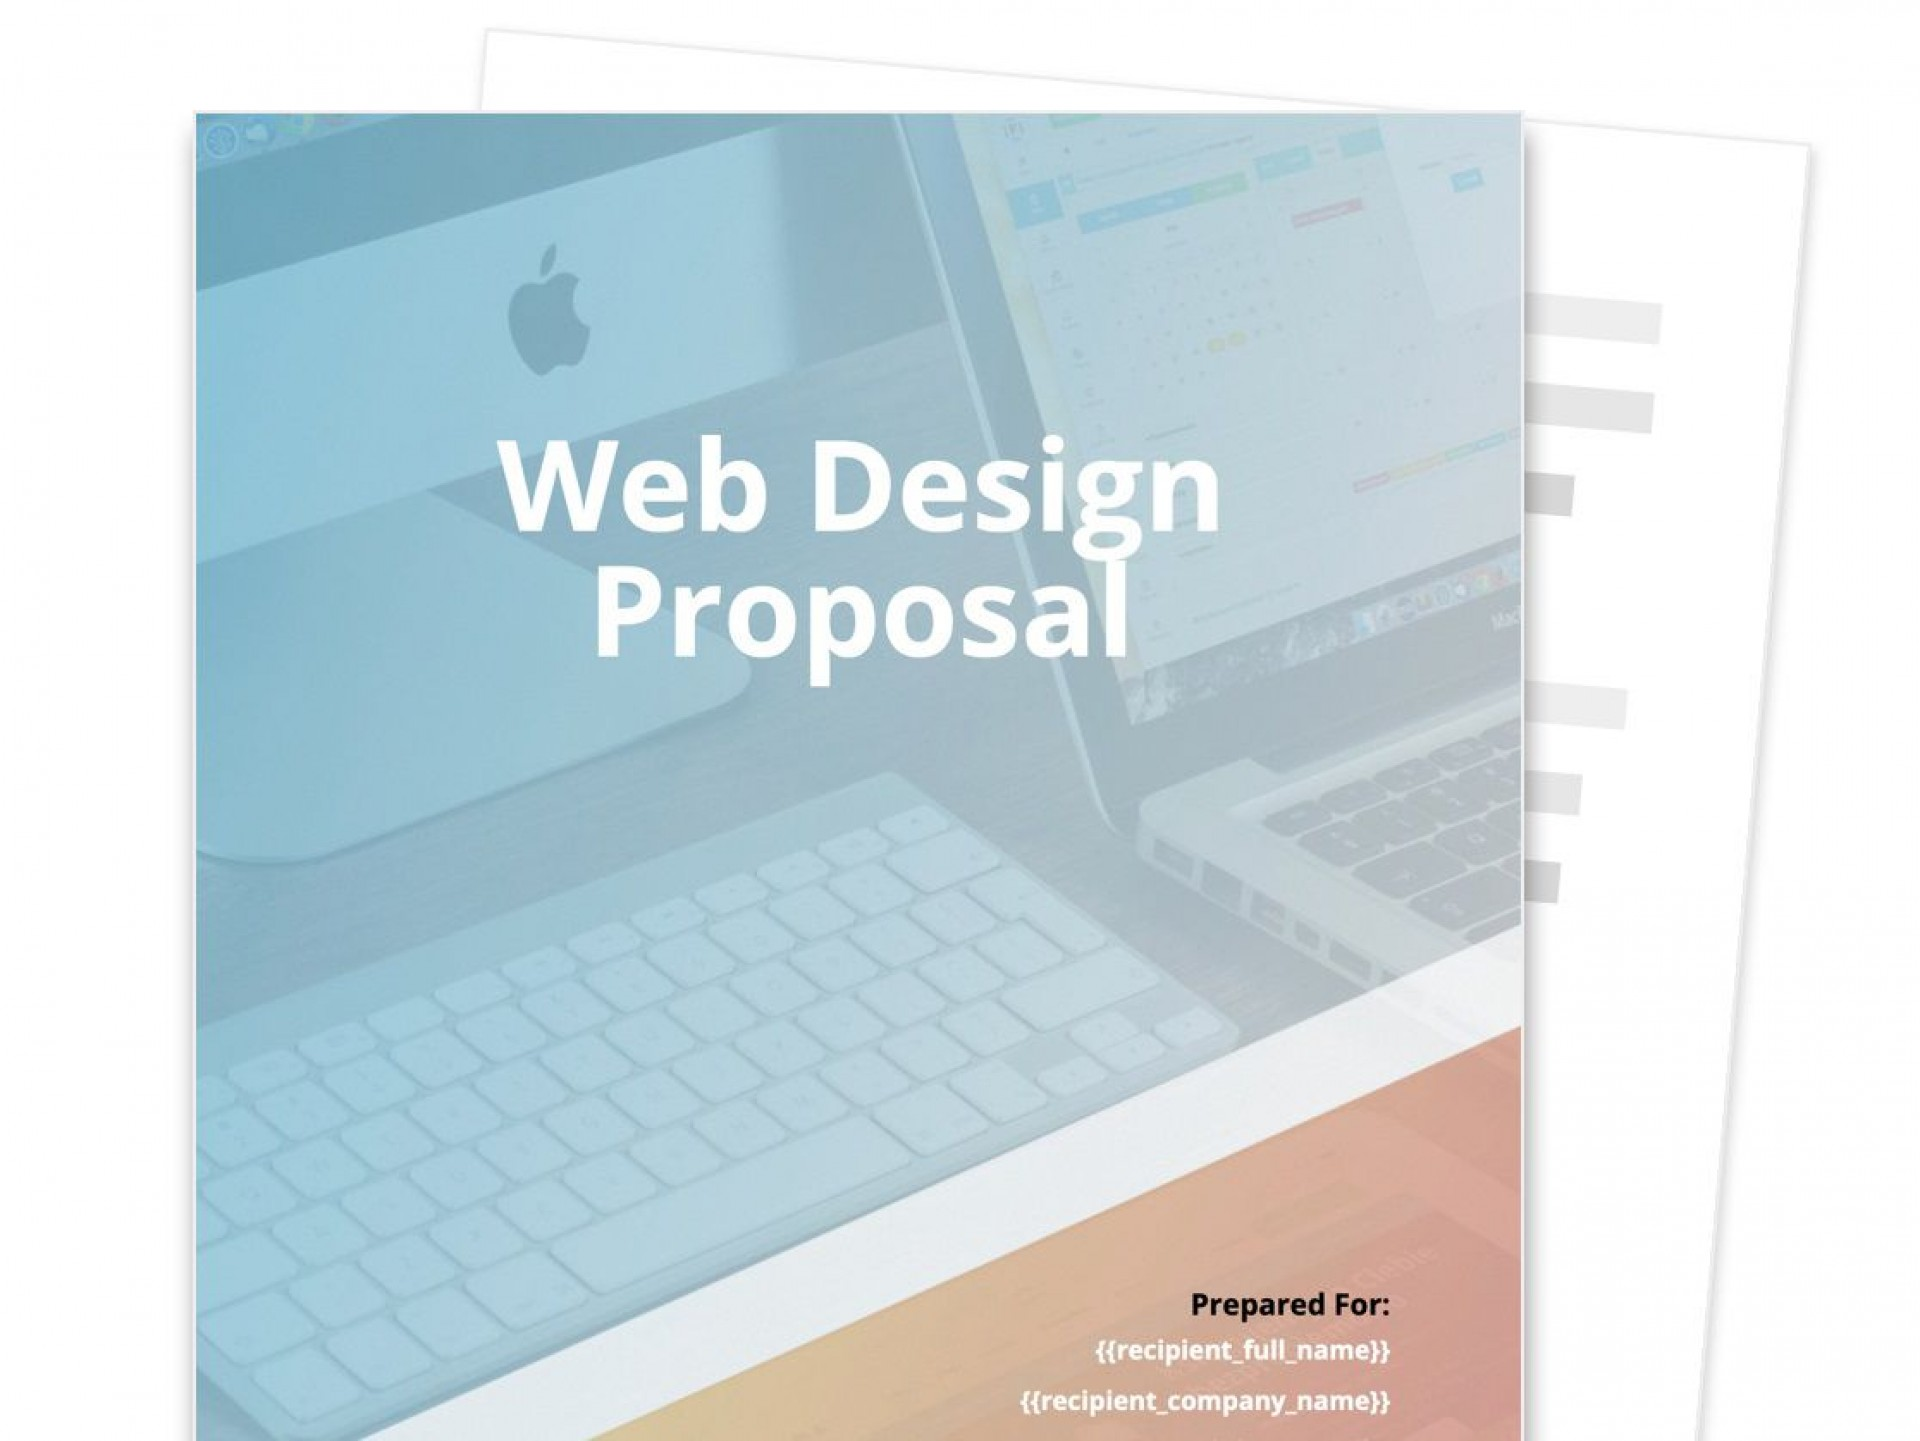 009 Imposing Website Design Proposal Template Ppt Image 1920